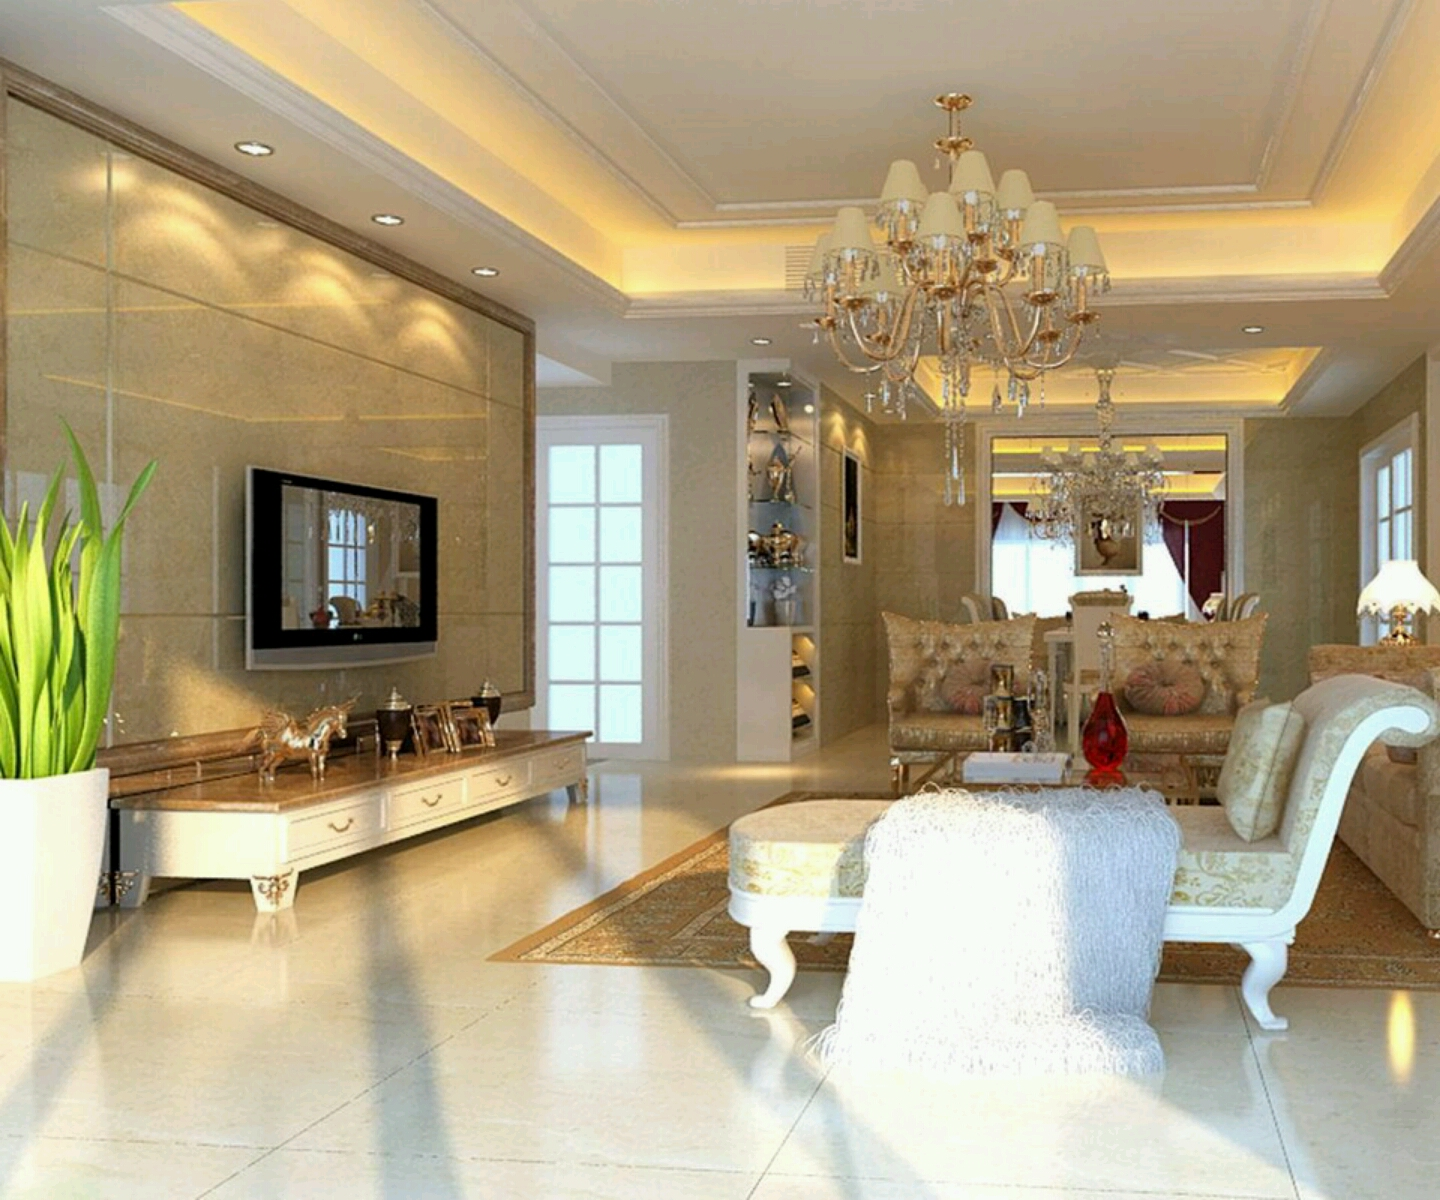 luxury homes drawing room inspirational interior design rh weexuduaol woosquirrel store luxury home interior instagram luxury home interior paris